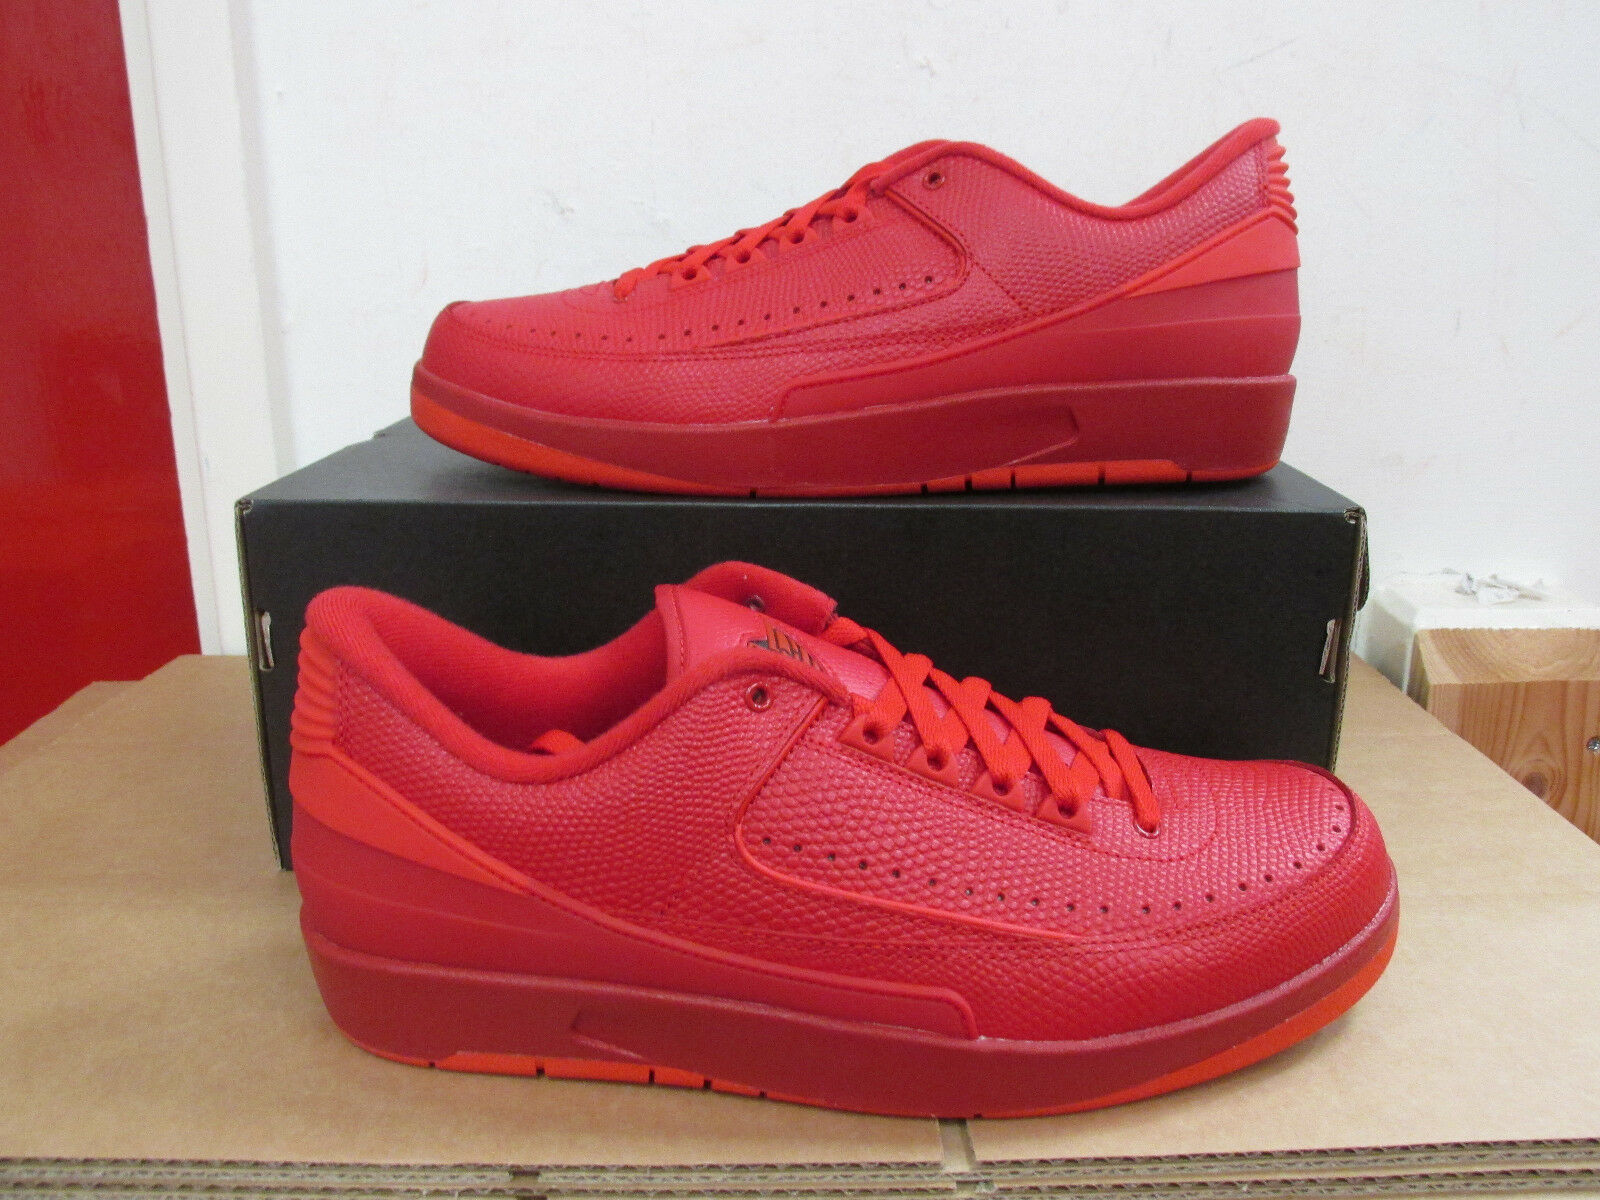 940210ec4e7259 Nike Air Jordan 2 Retro Low Sz 10 Gym Red University Turquoise ...